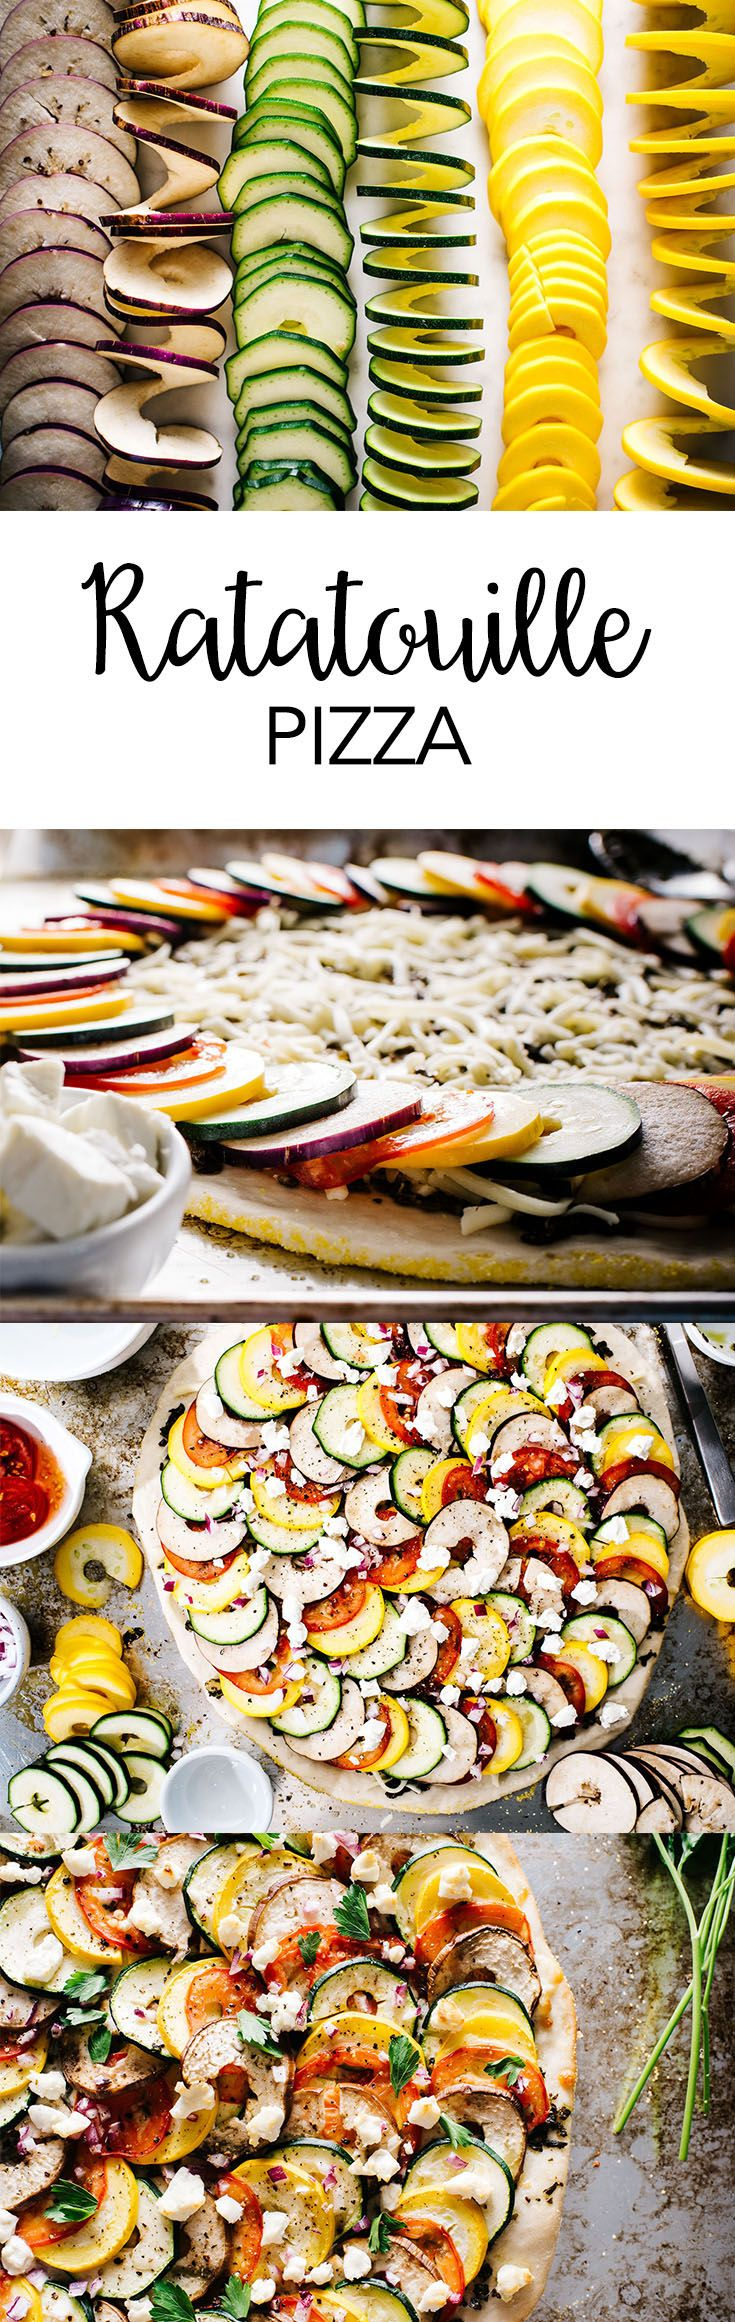 Put a fresh spin on pizza with the new Spiralizer. With zucchini, Japanese eggplant, pesto, mozzarella, tomatoes, onion and goat cheese, it's a delicious handheld version of the famous French dish.